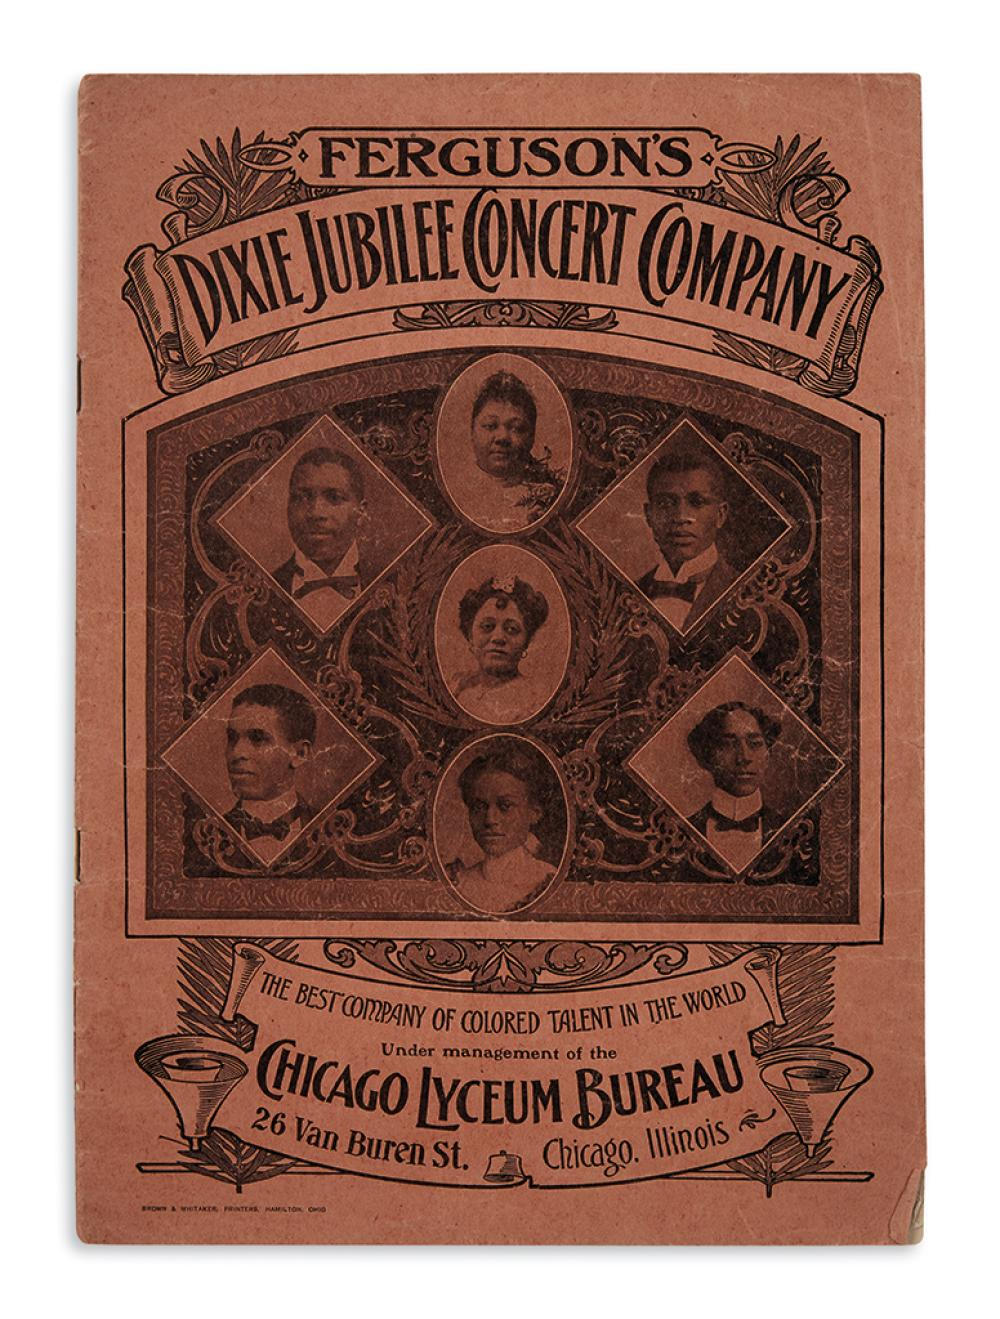 (MUSIC.) Ferguson's Dixie Jubilee Concert Company, the Best Company of Colored Talent in the World.